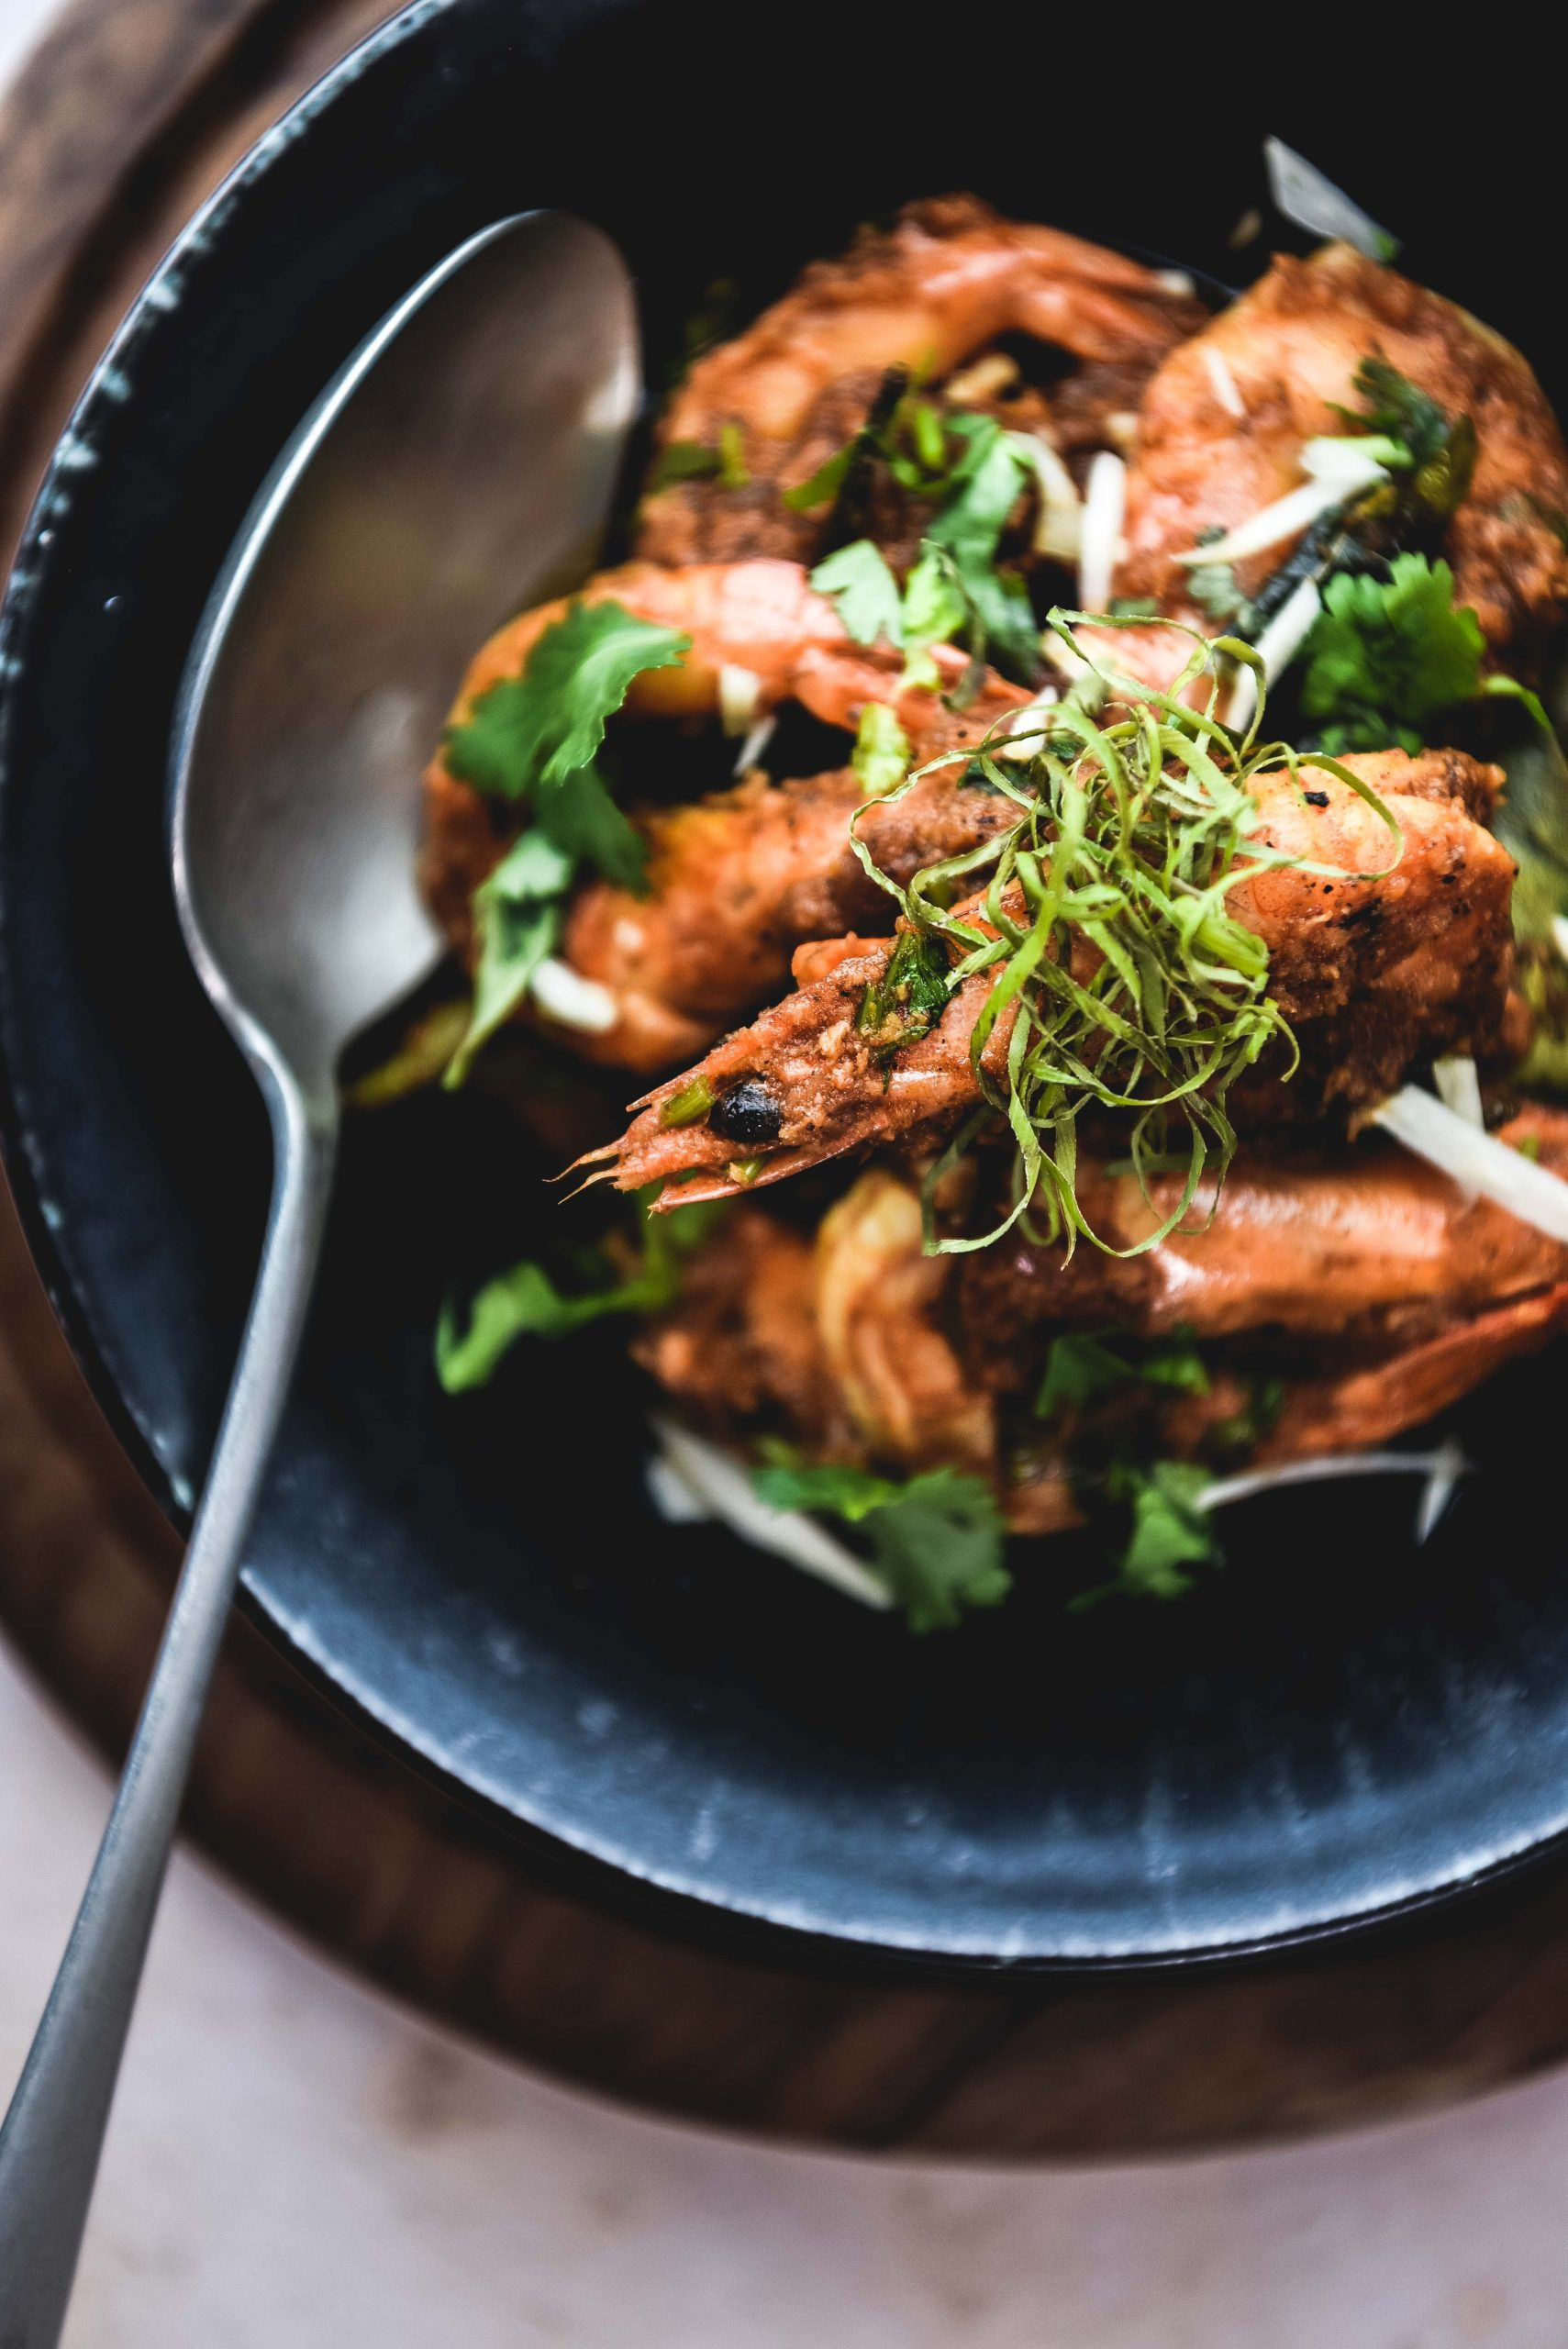 Prawns, silver spoon, black plate and wooden disk